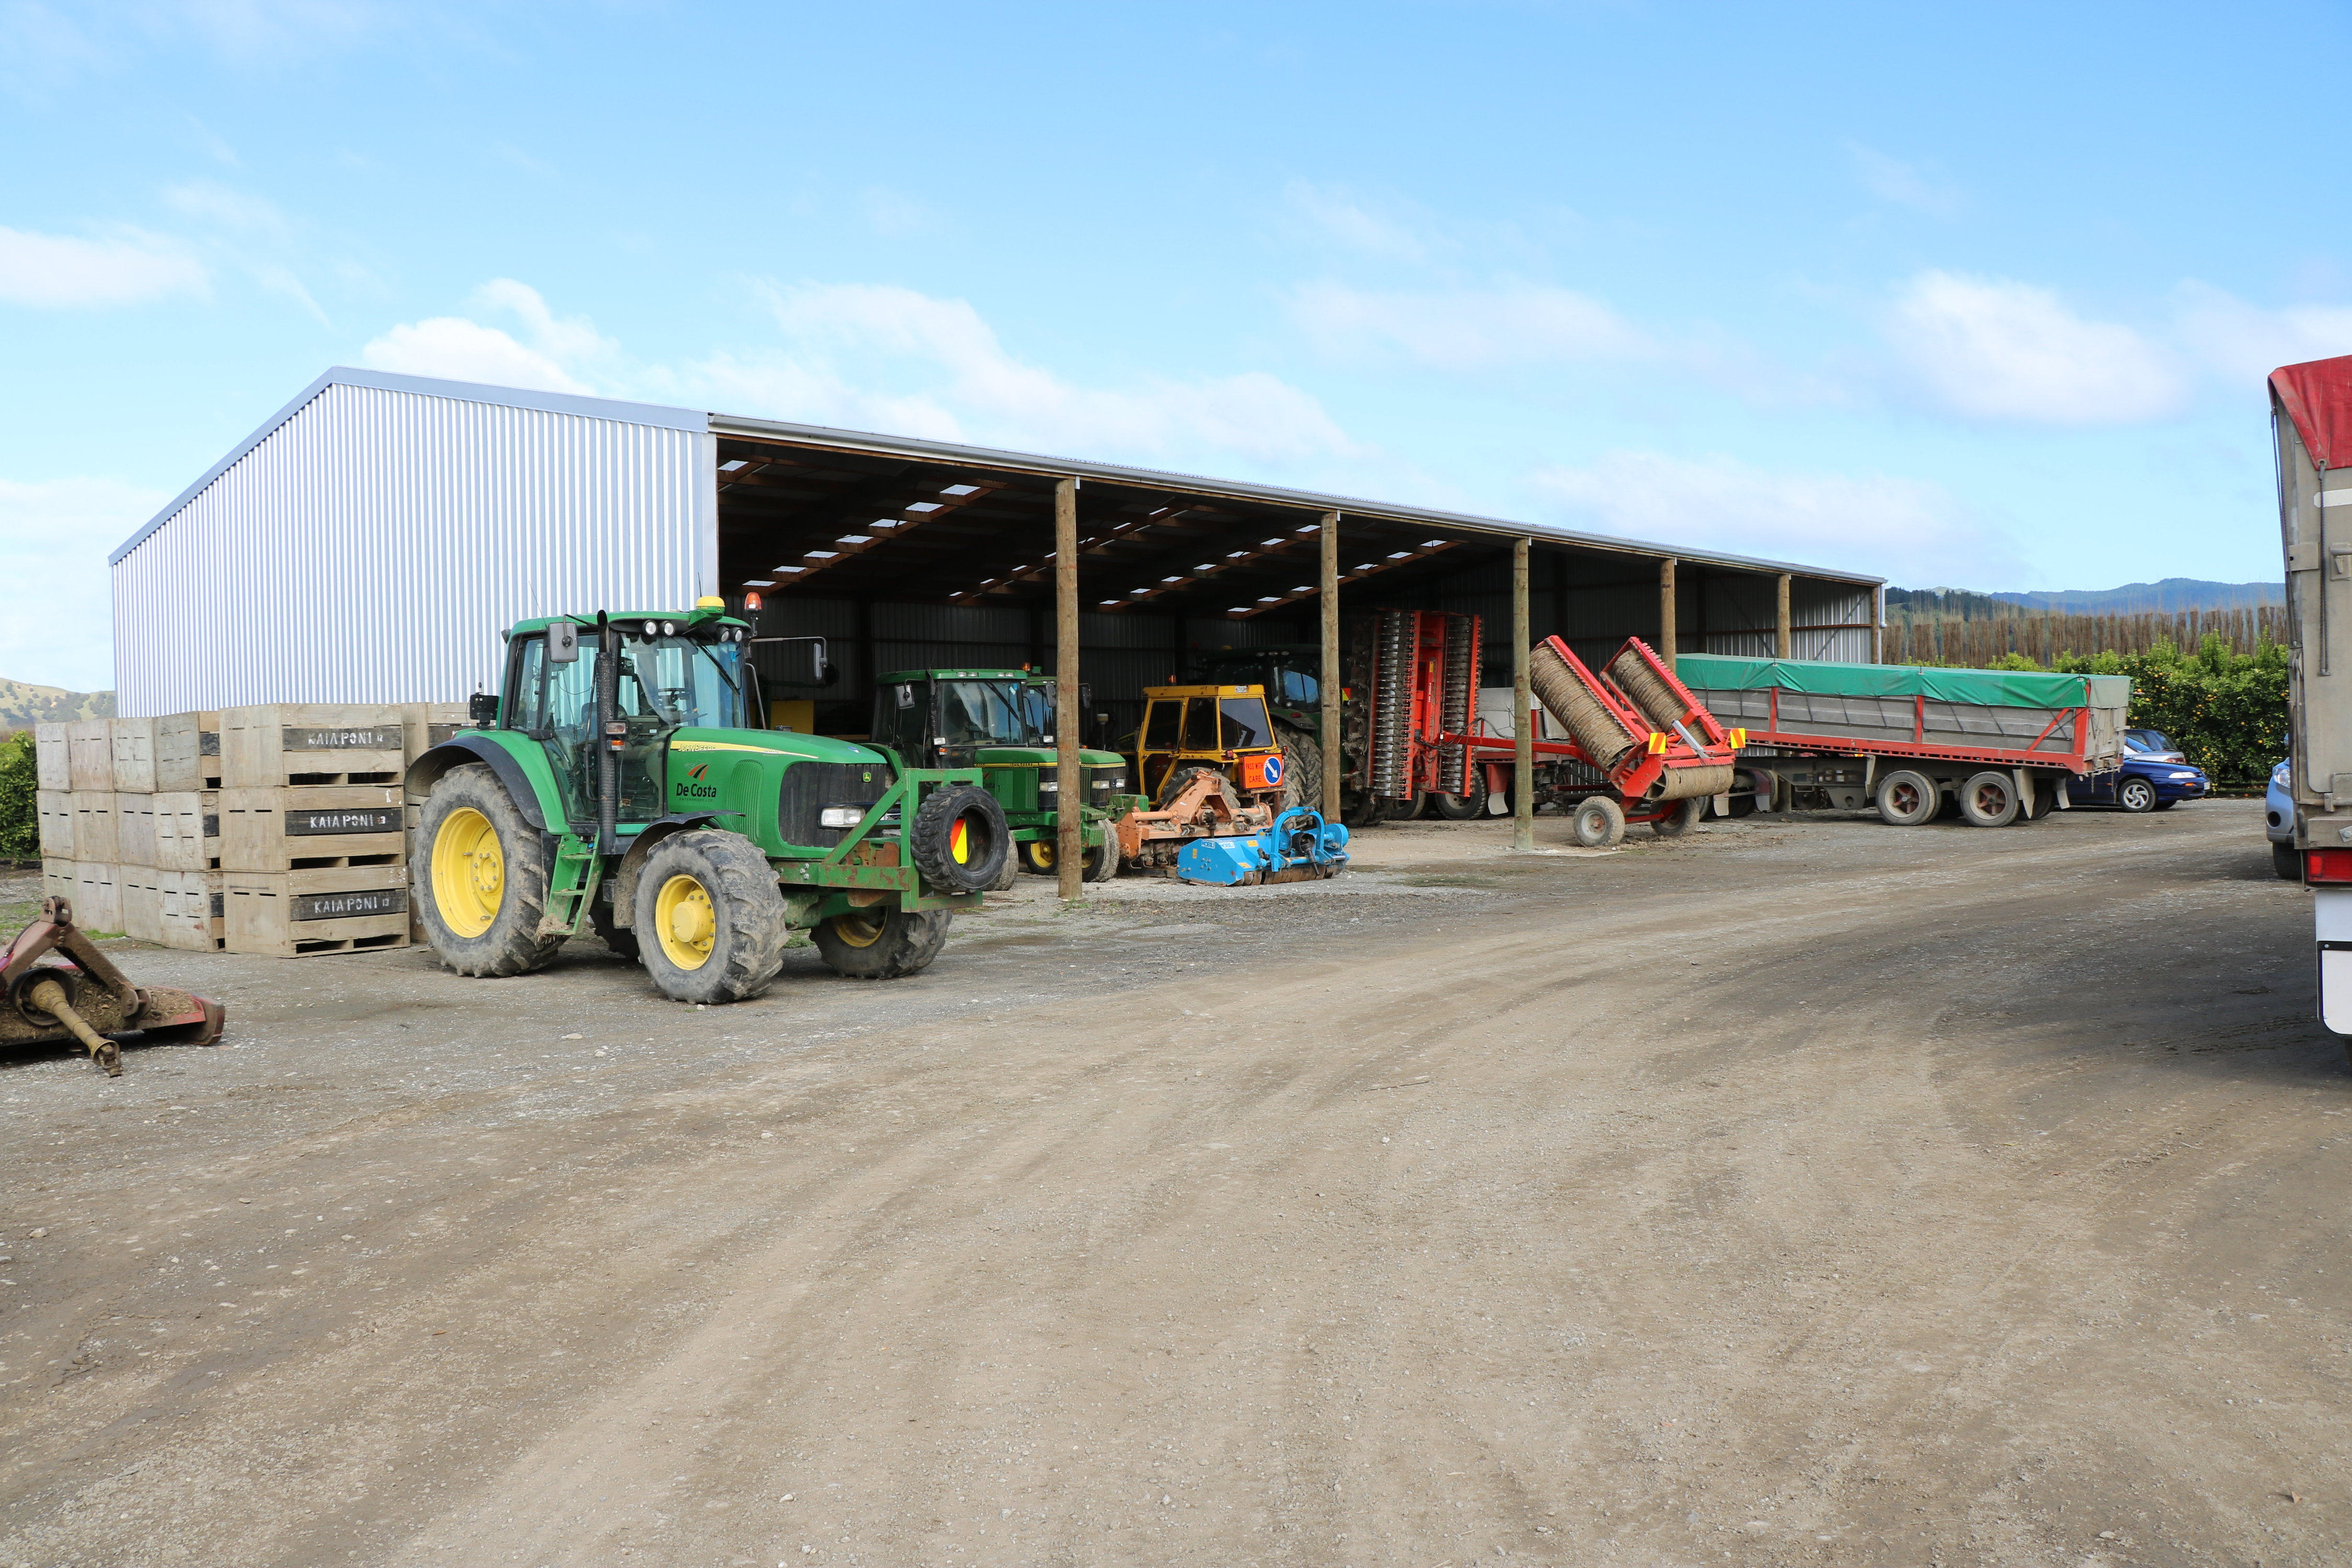 Open bays make storage of large machinery extremely efficient